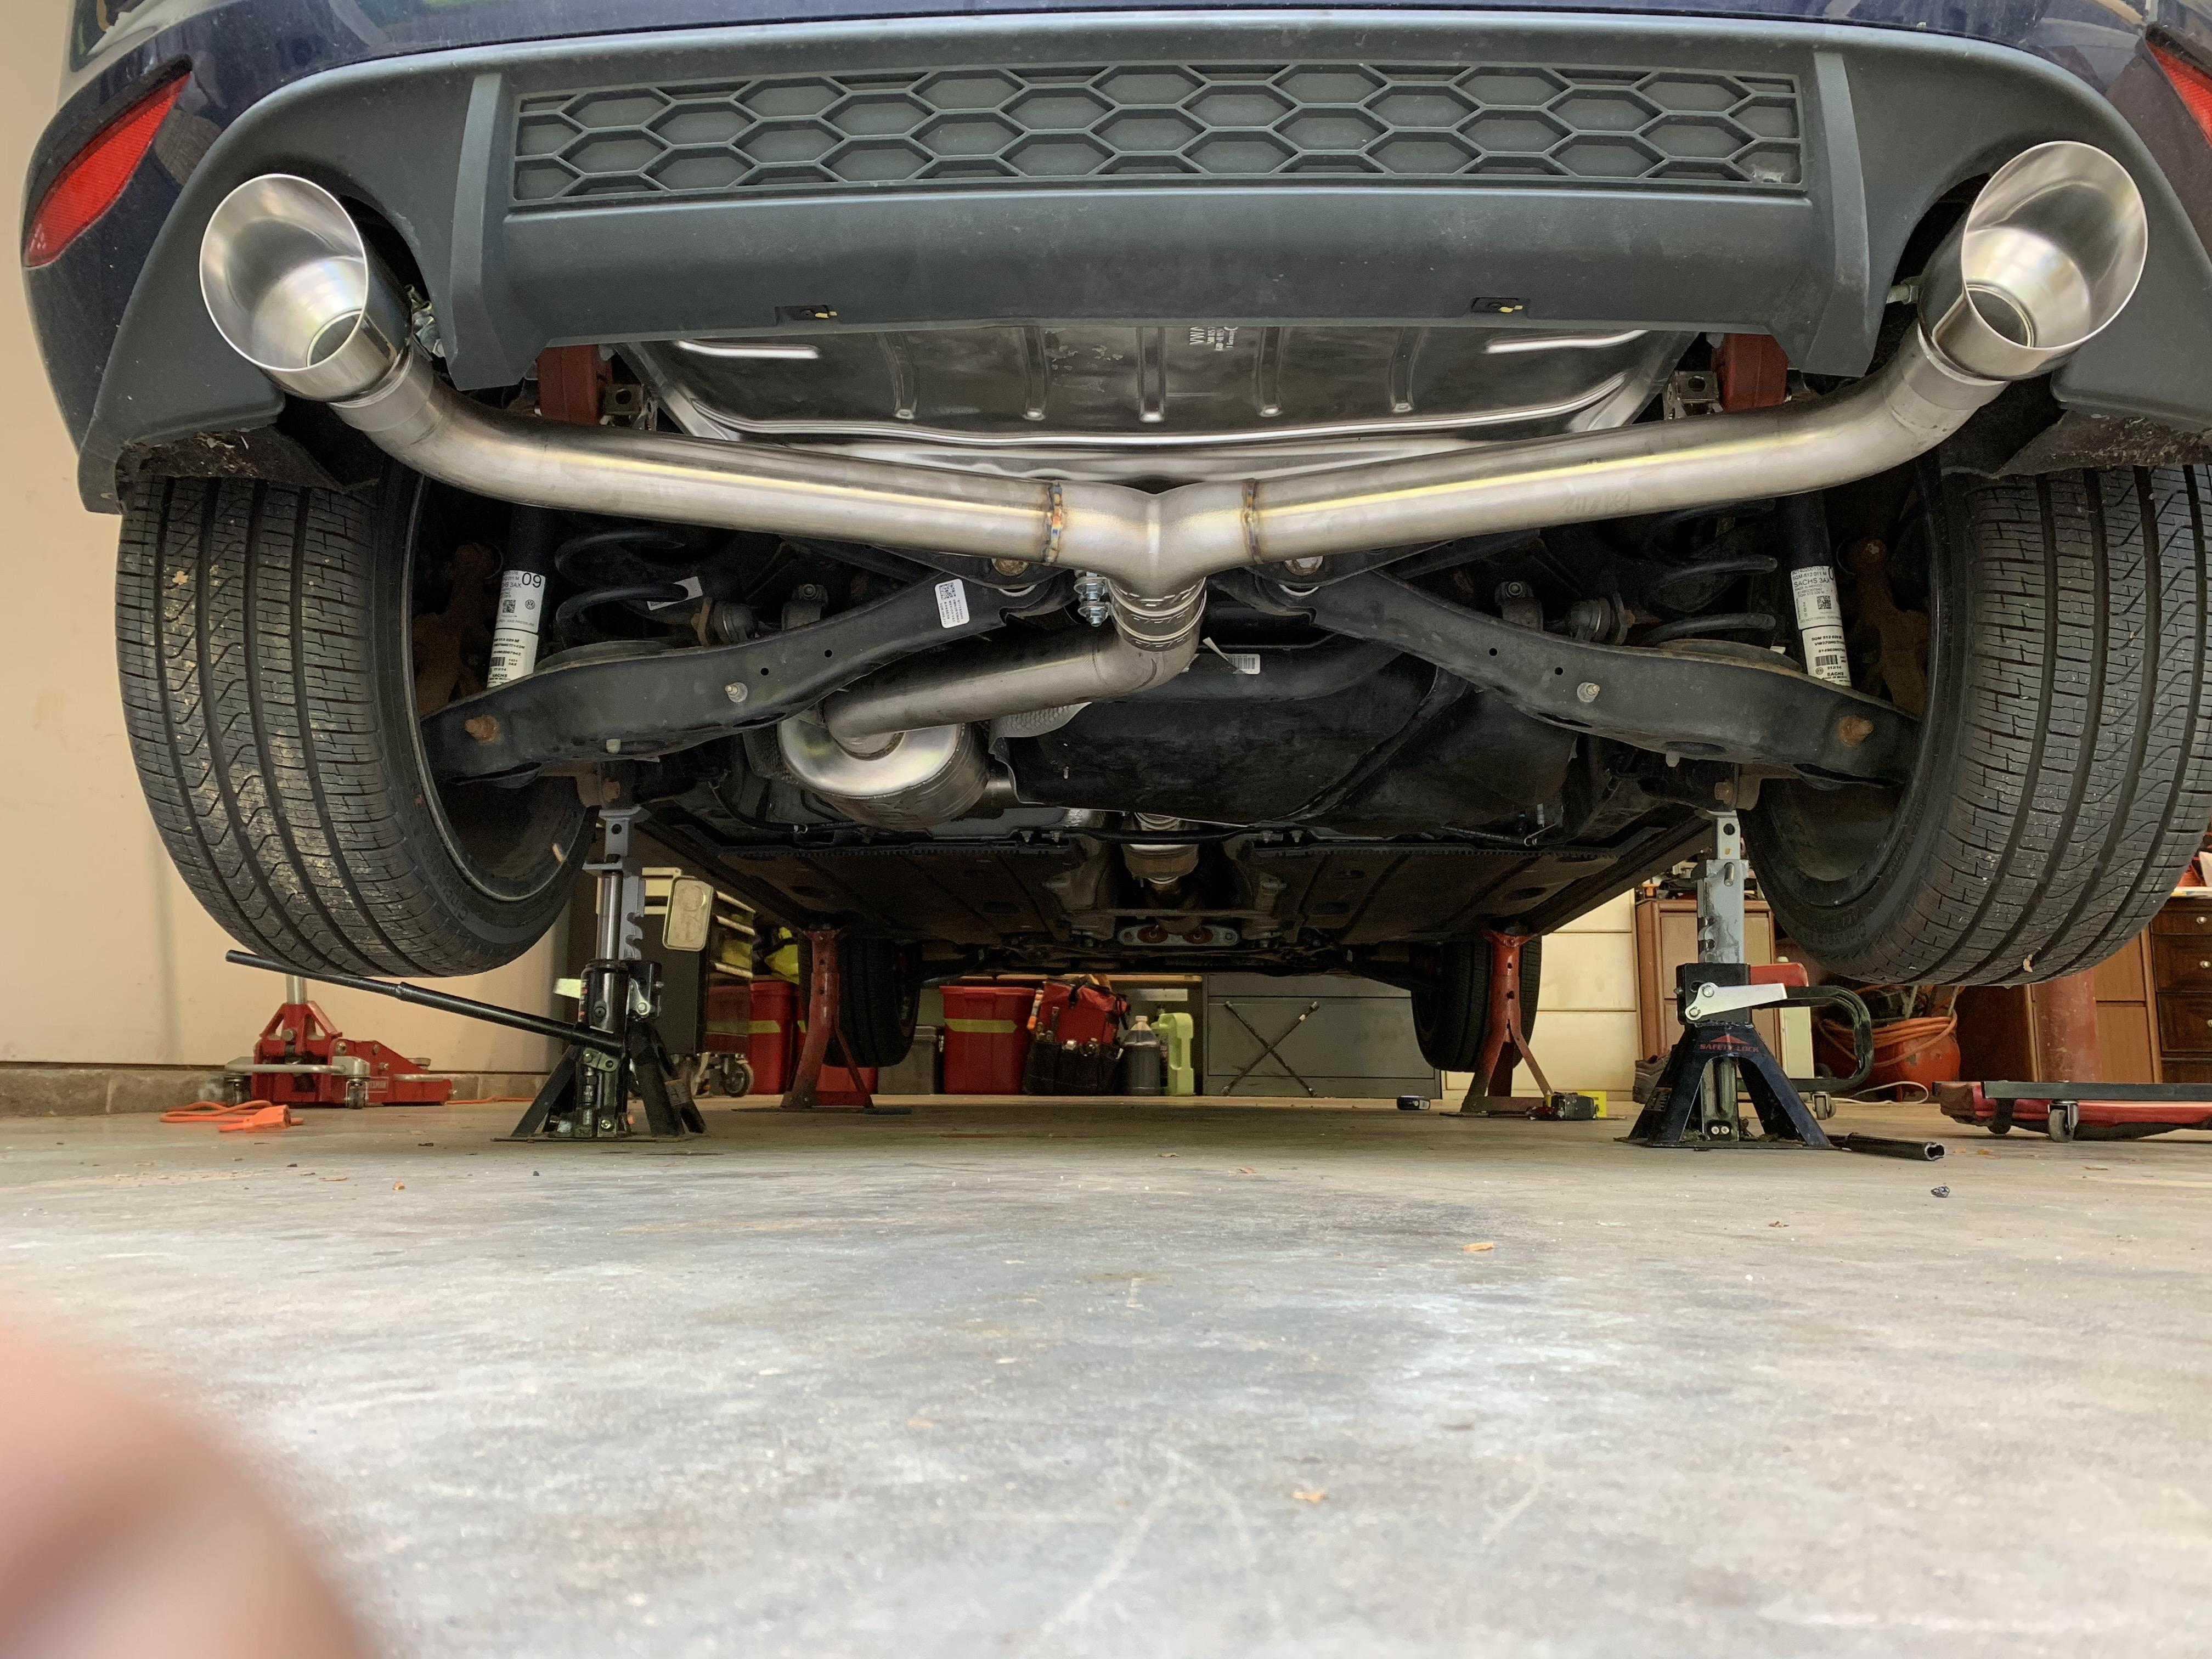 installed an apr catback exhaust and i